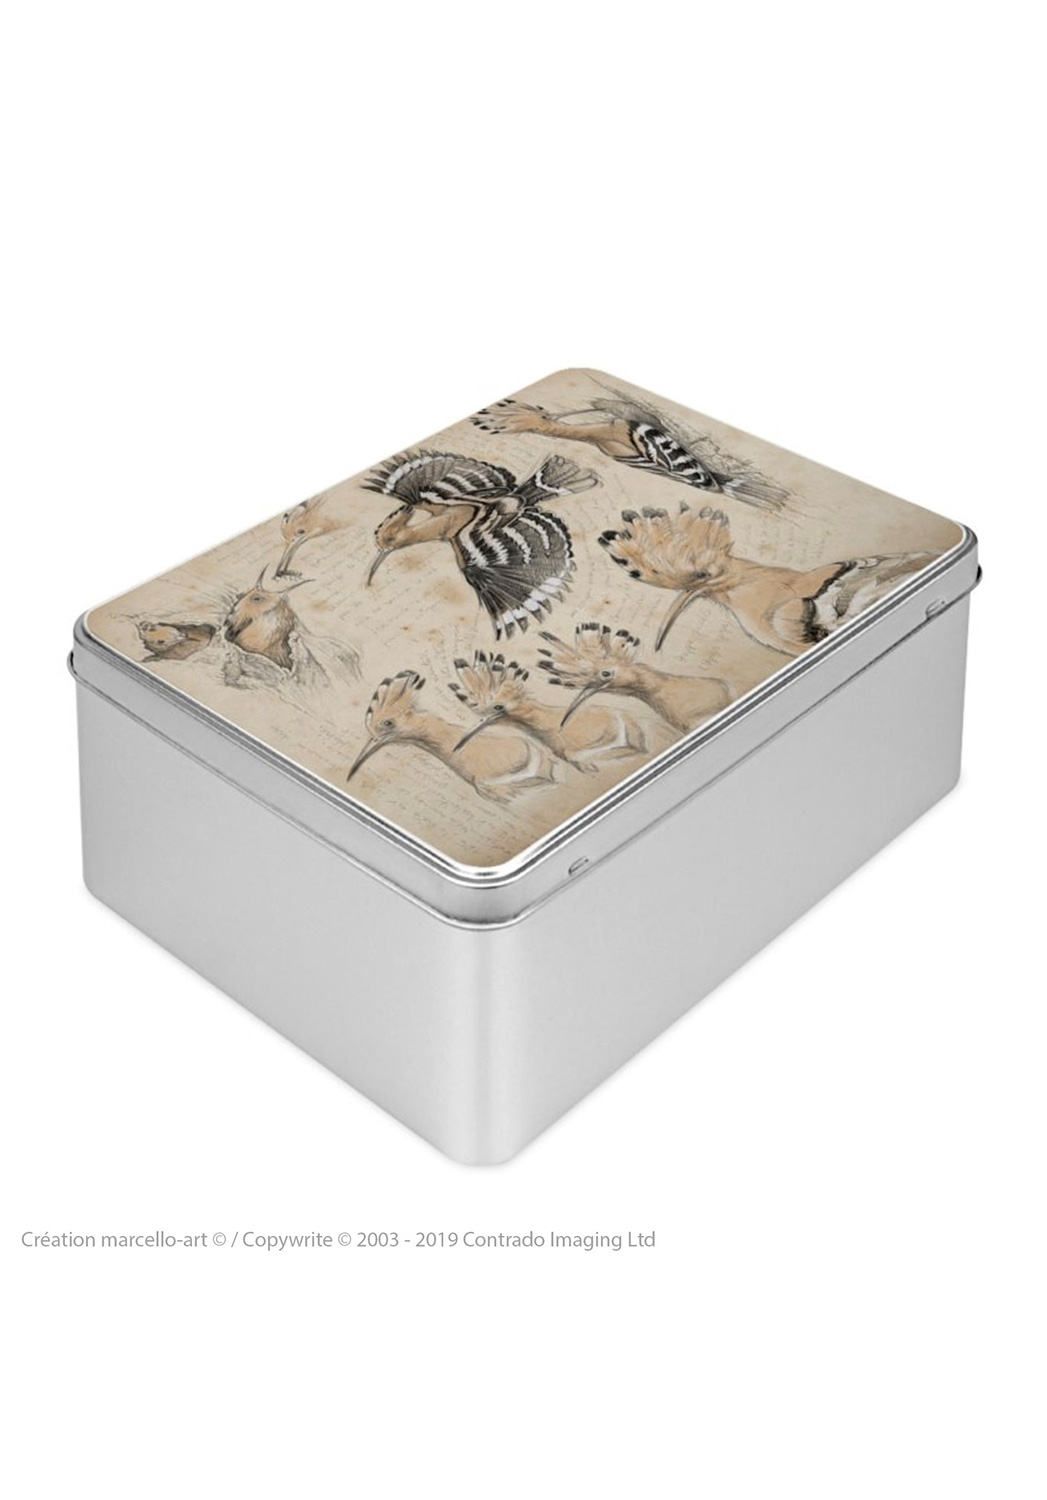 Marcello-art: Rectangular cookie box Rectangular cookie box 182 hoopoe